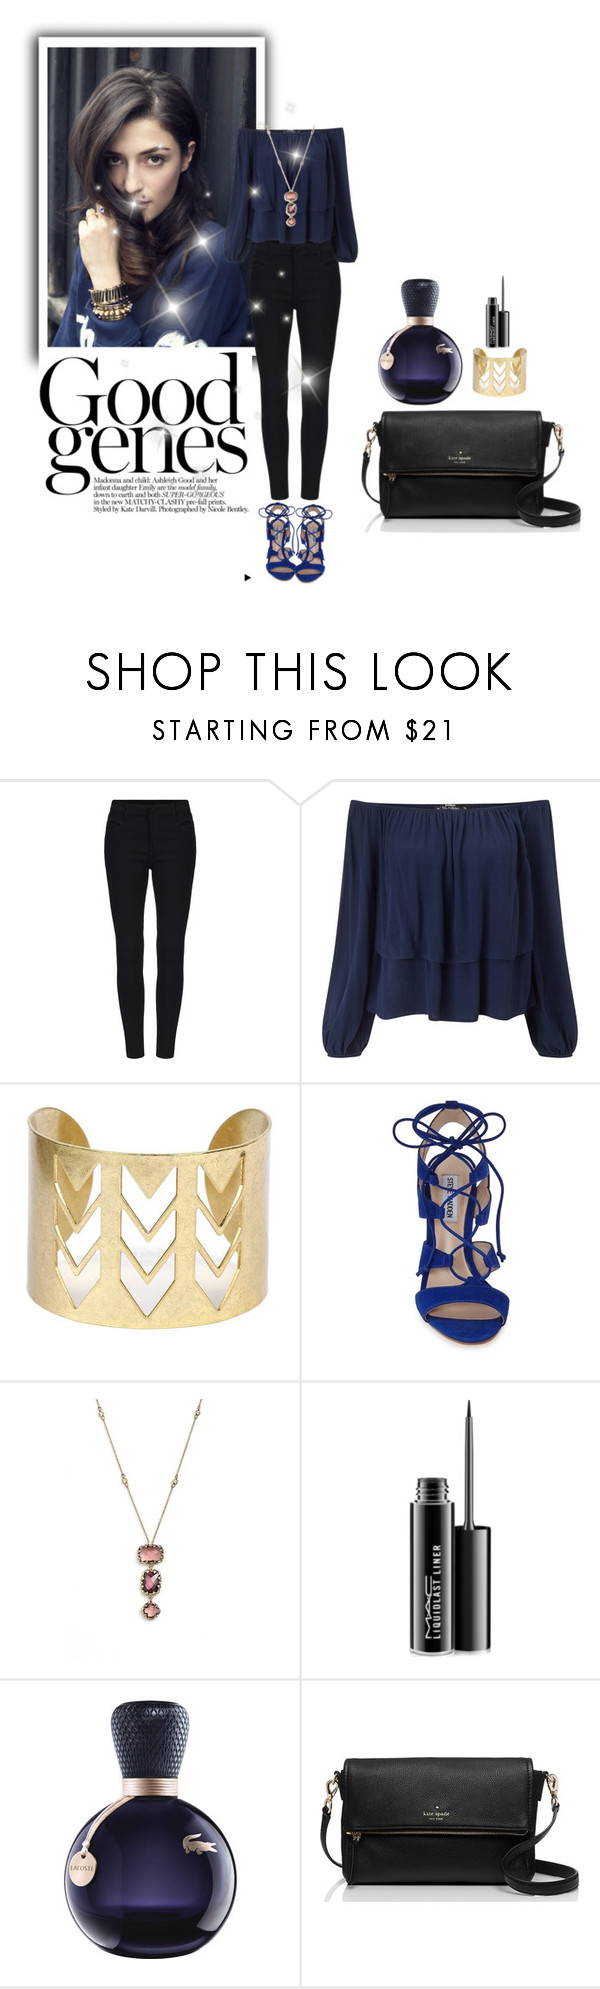 """""""silent beauty"""" by shailja787 ❤ liked on Polyvore featuring Miss Selfridge, Steve Madden, Judith Jack, MAC Cosmetics, Lacoste, Kate Spade, women's clothing, women's fashion, women and female"""